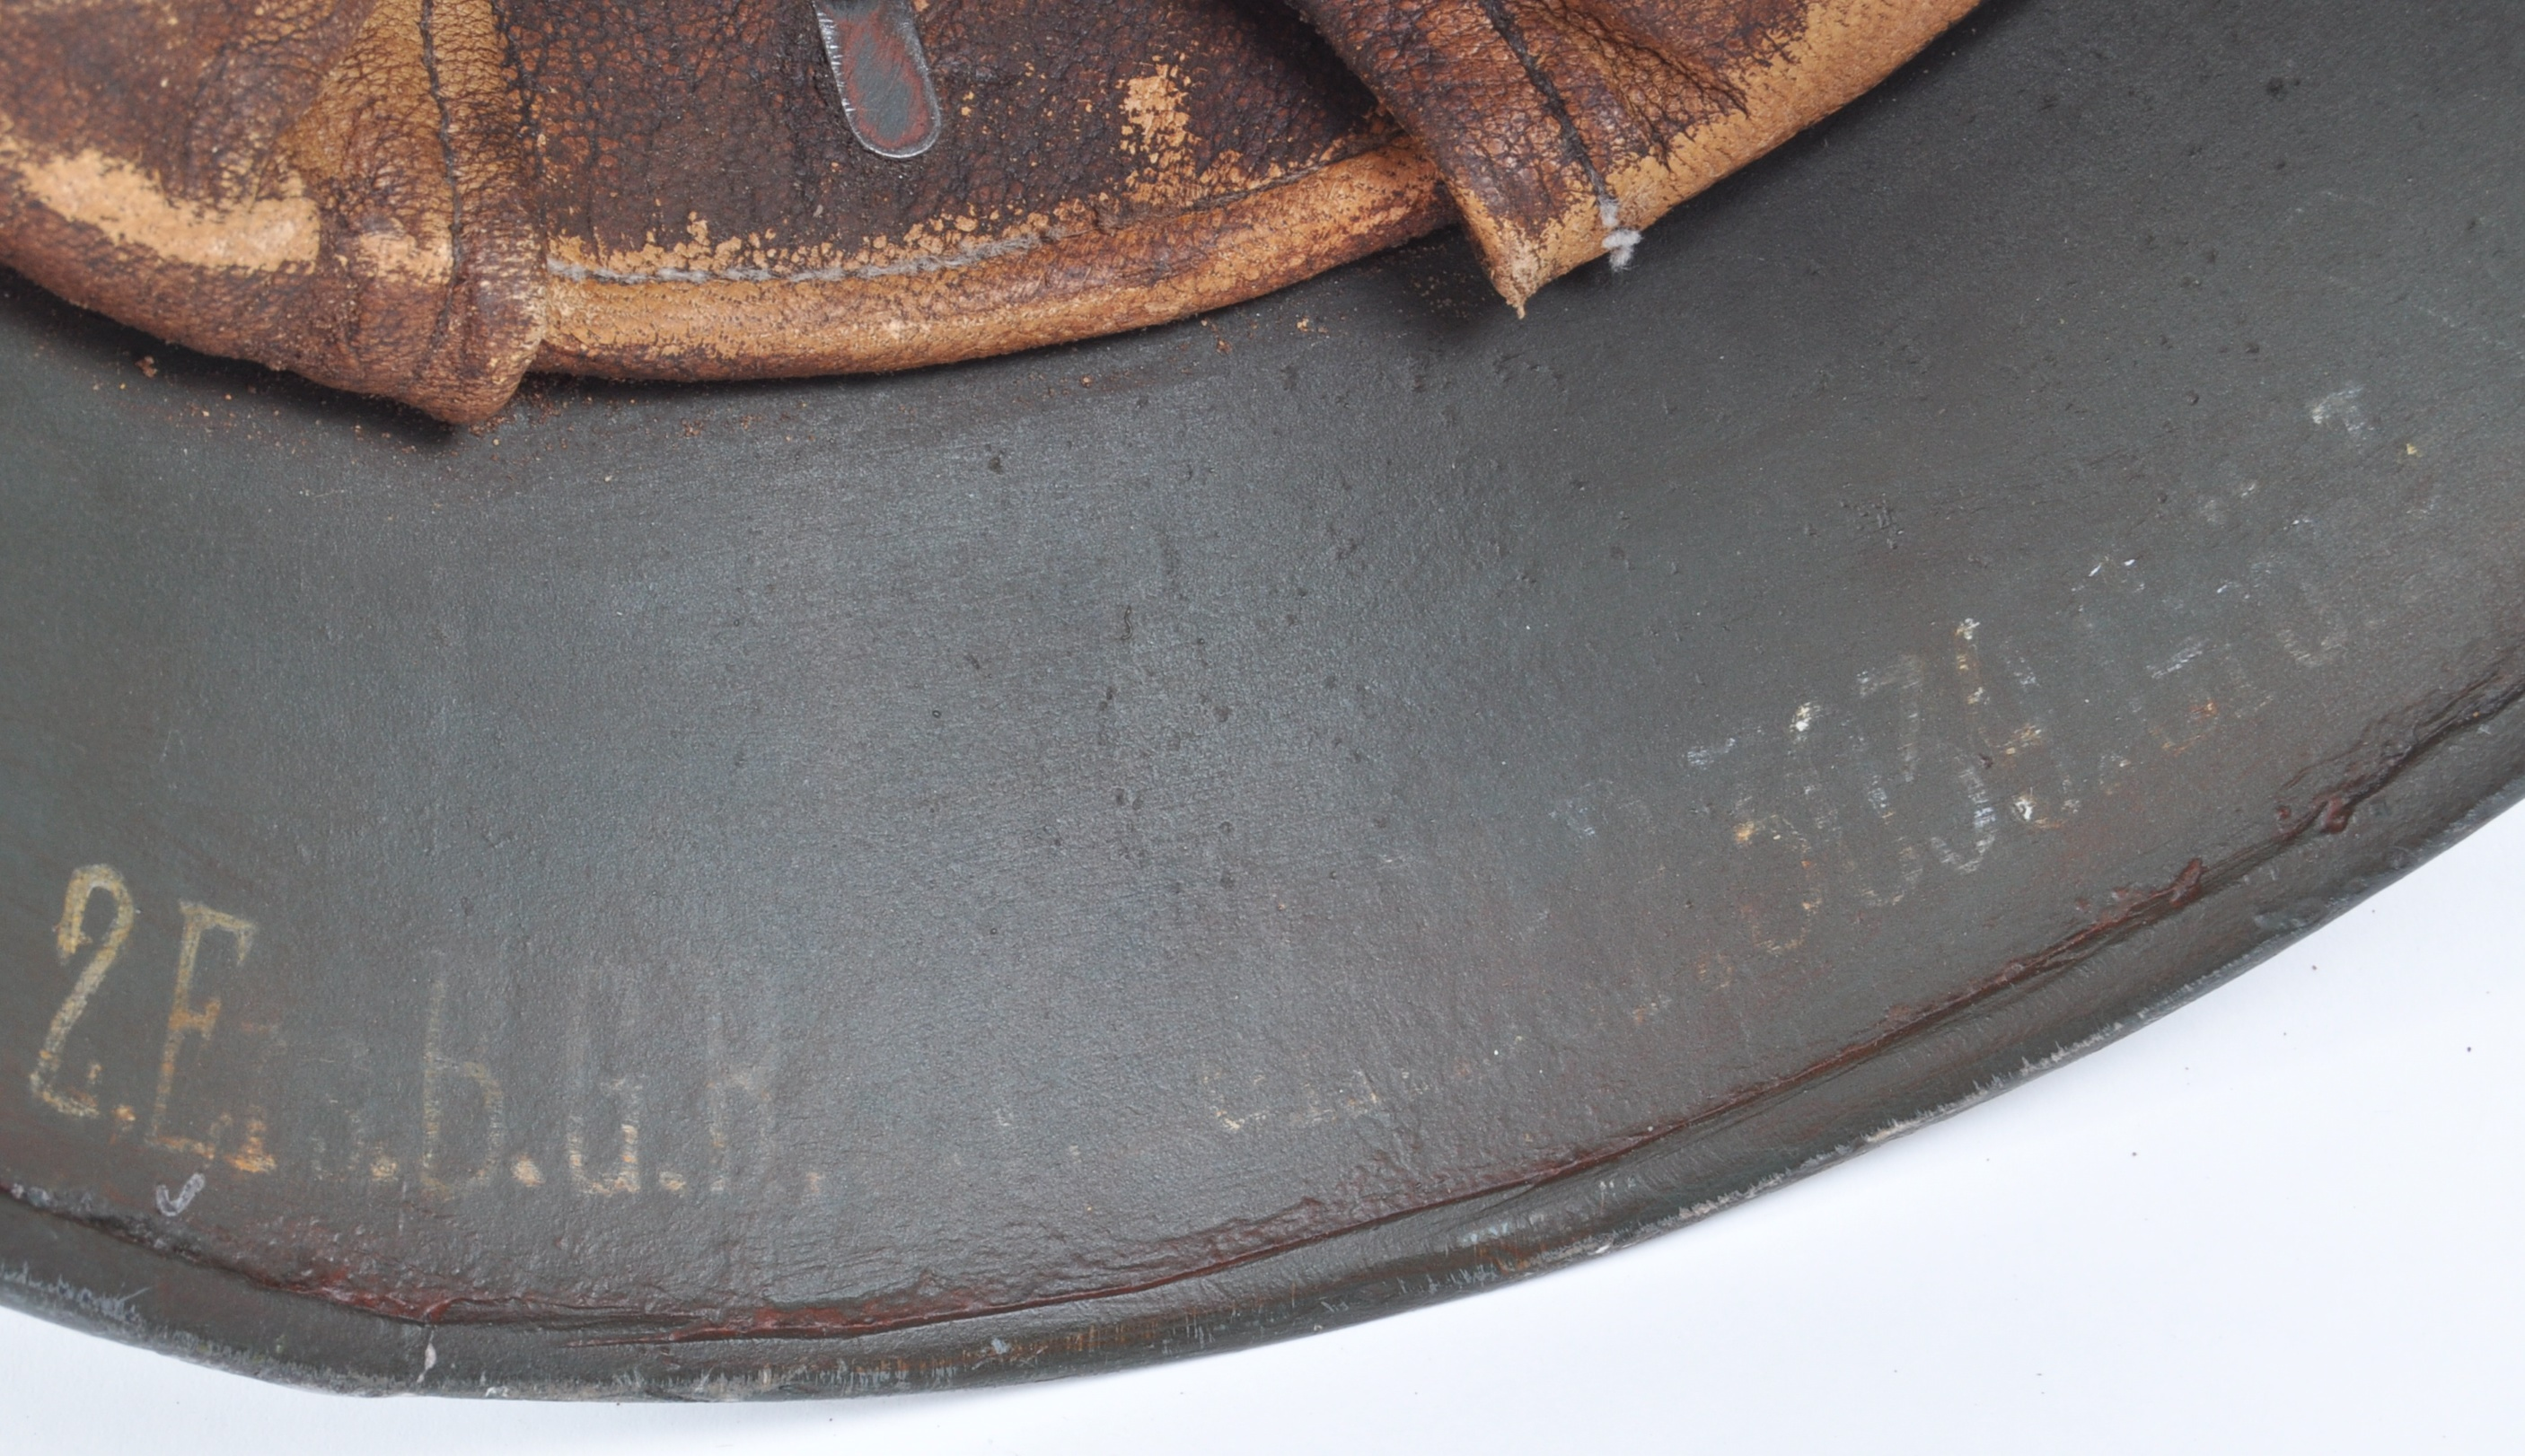 WWI FIRST WORLD WAR M16 CAMOUFLAGE HELMET - Image 6 of 7